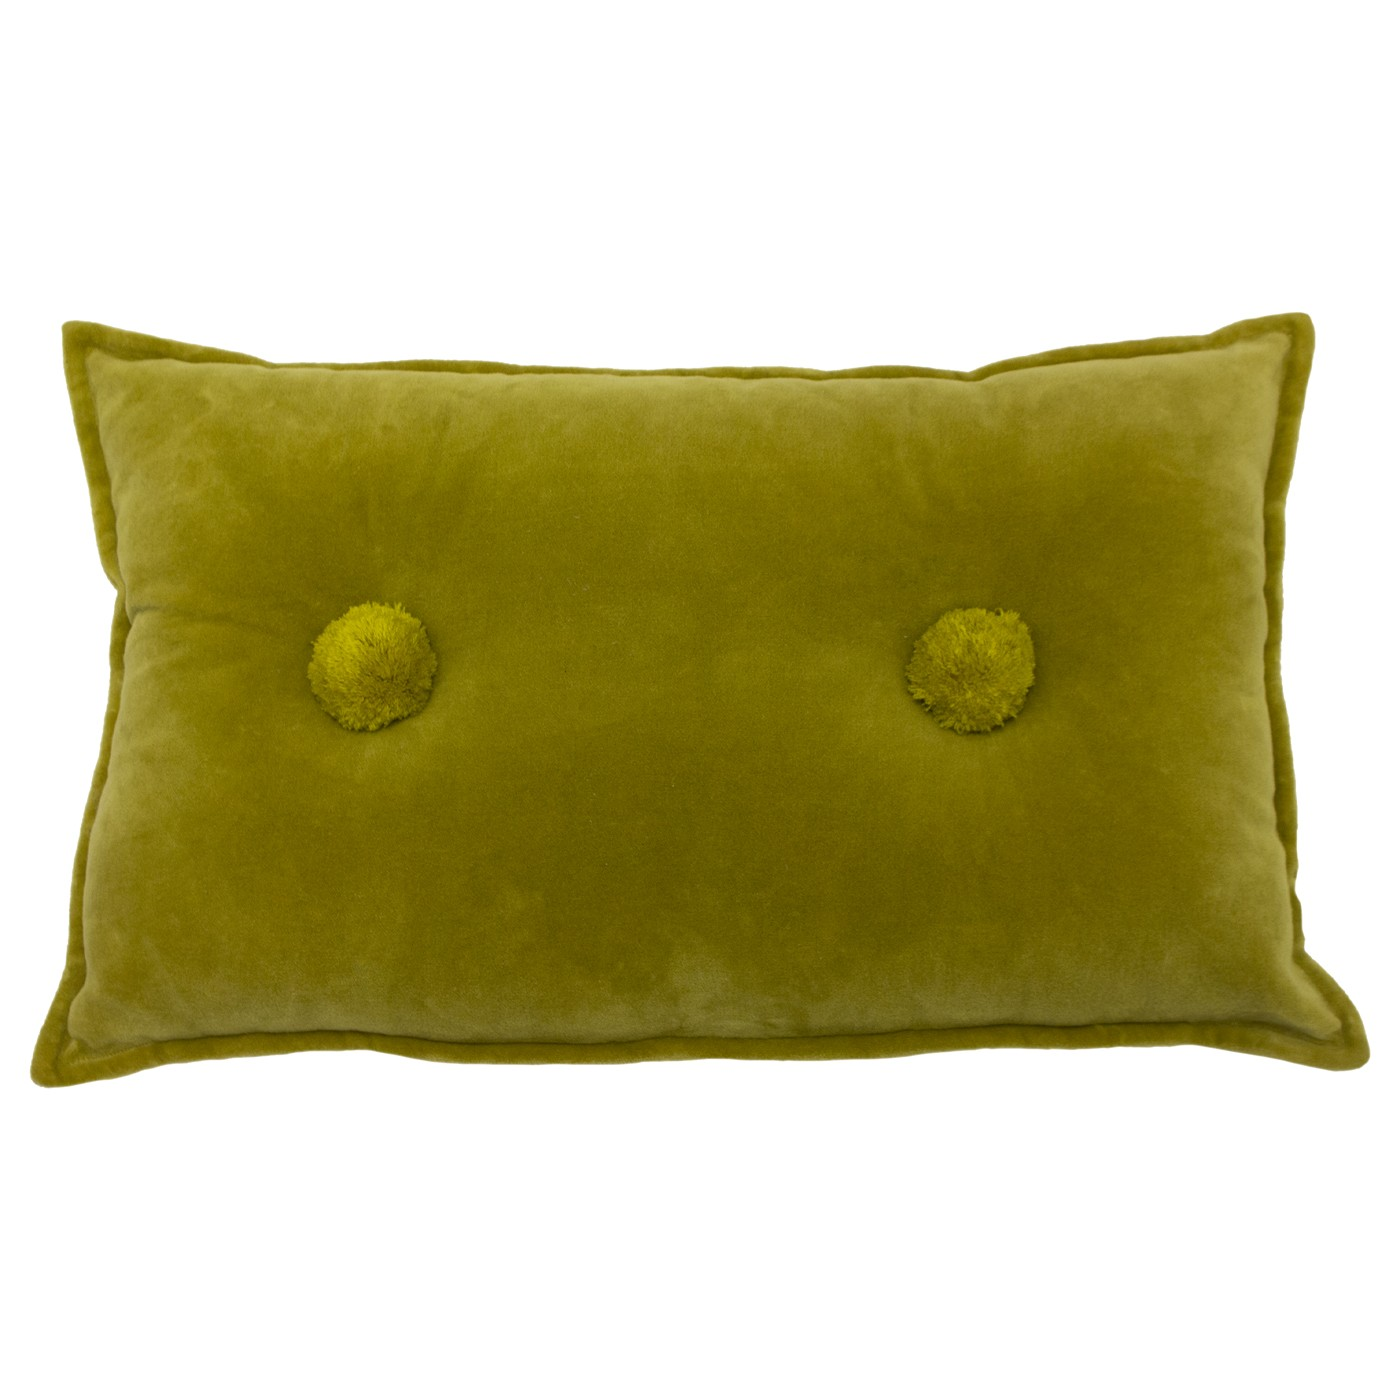 Bobble Cushion, Ochre by furn.